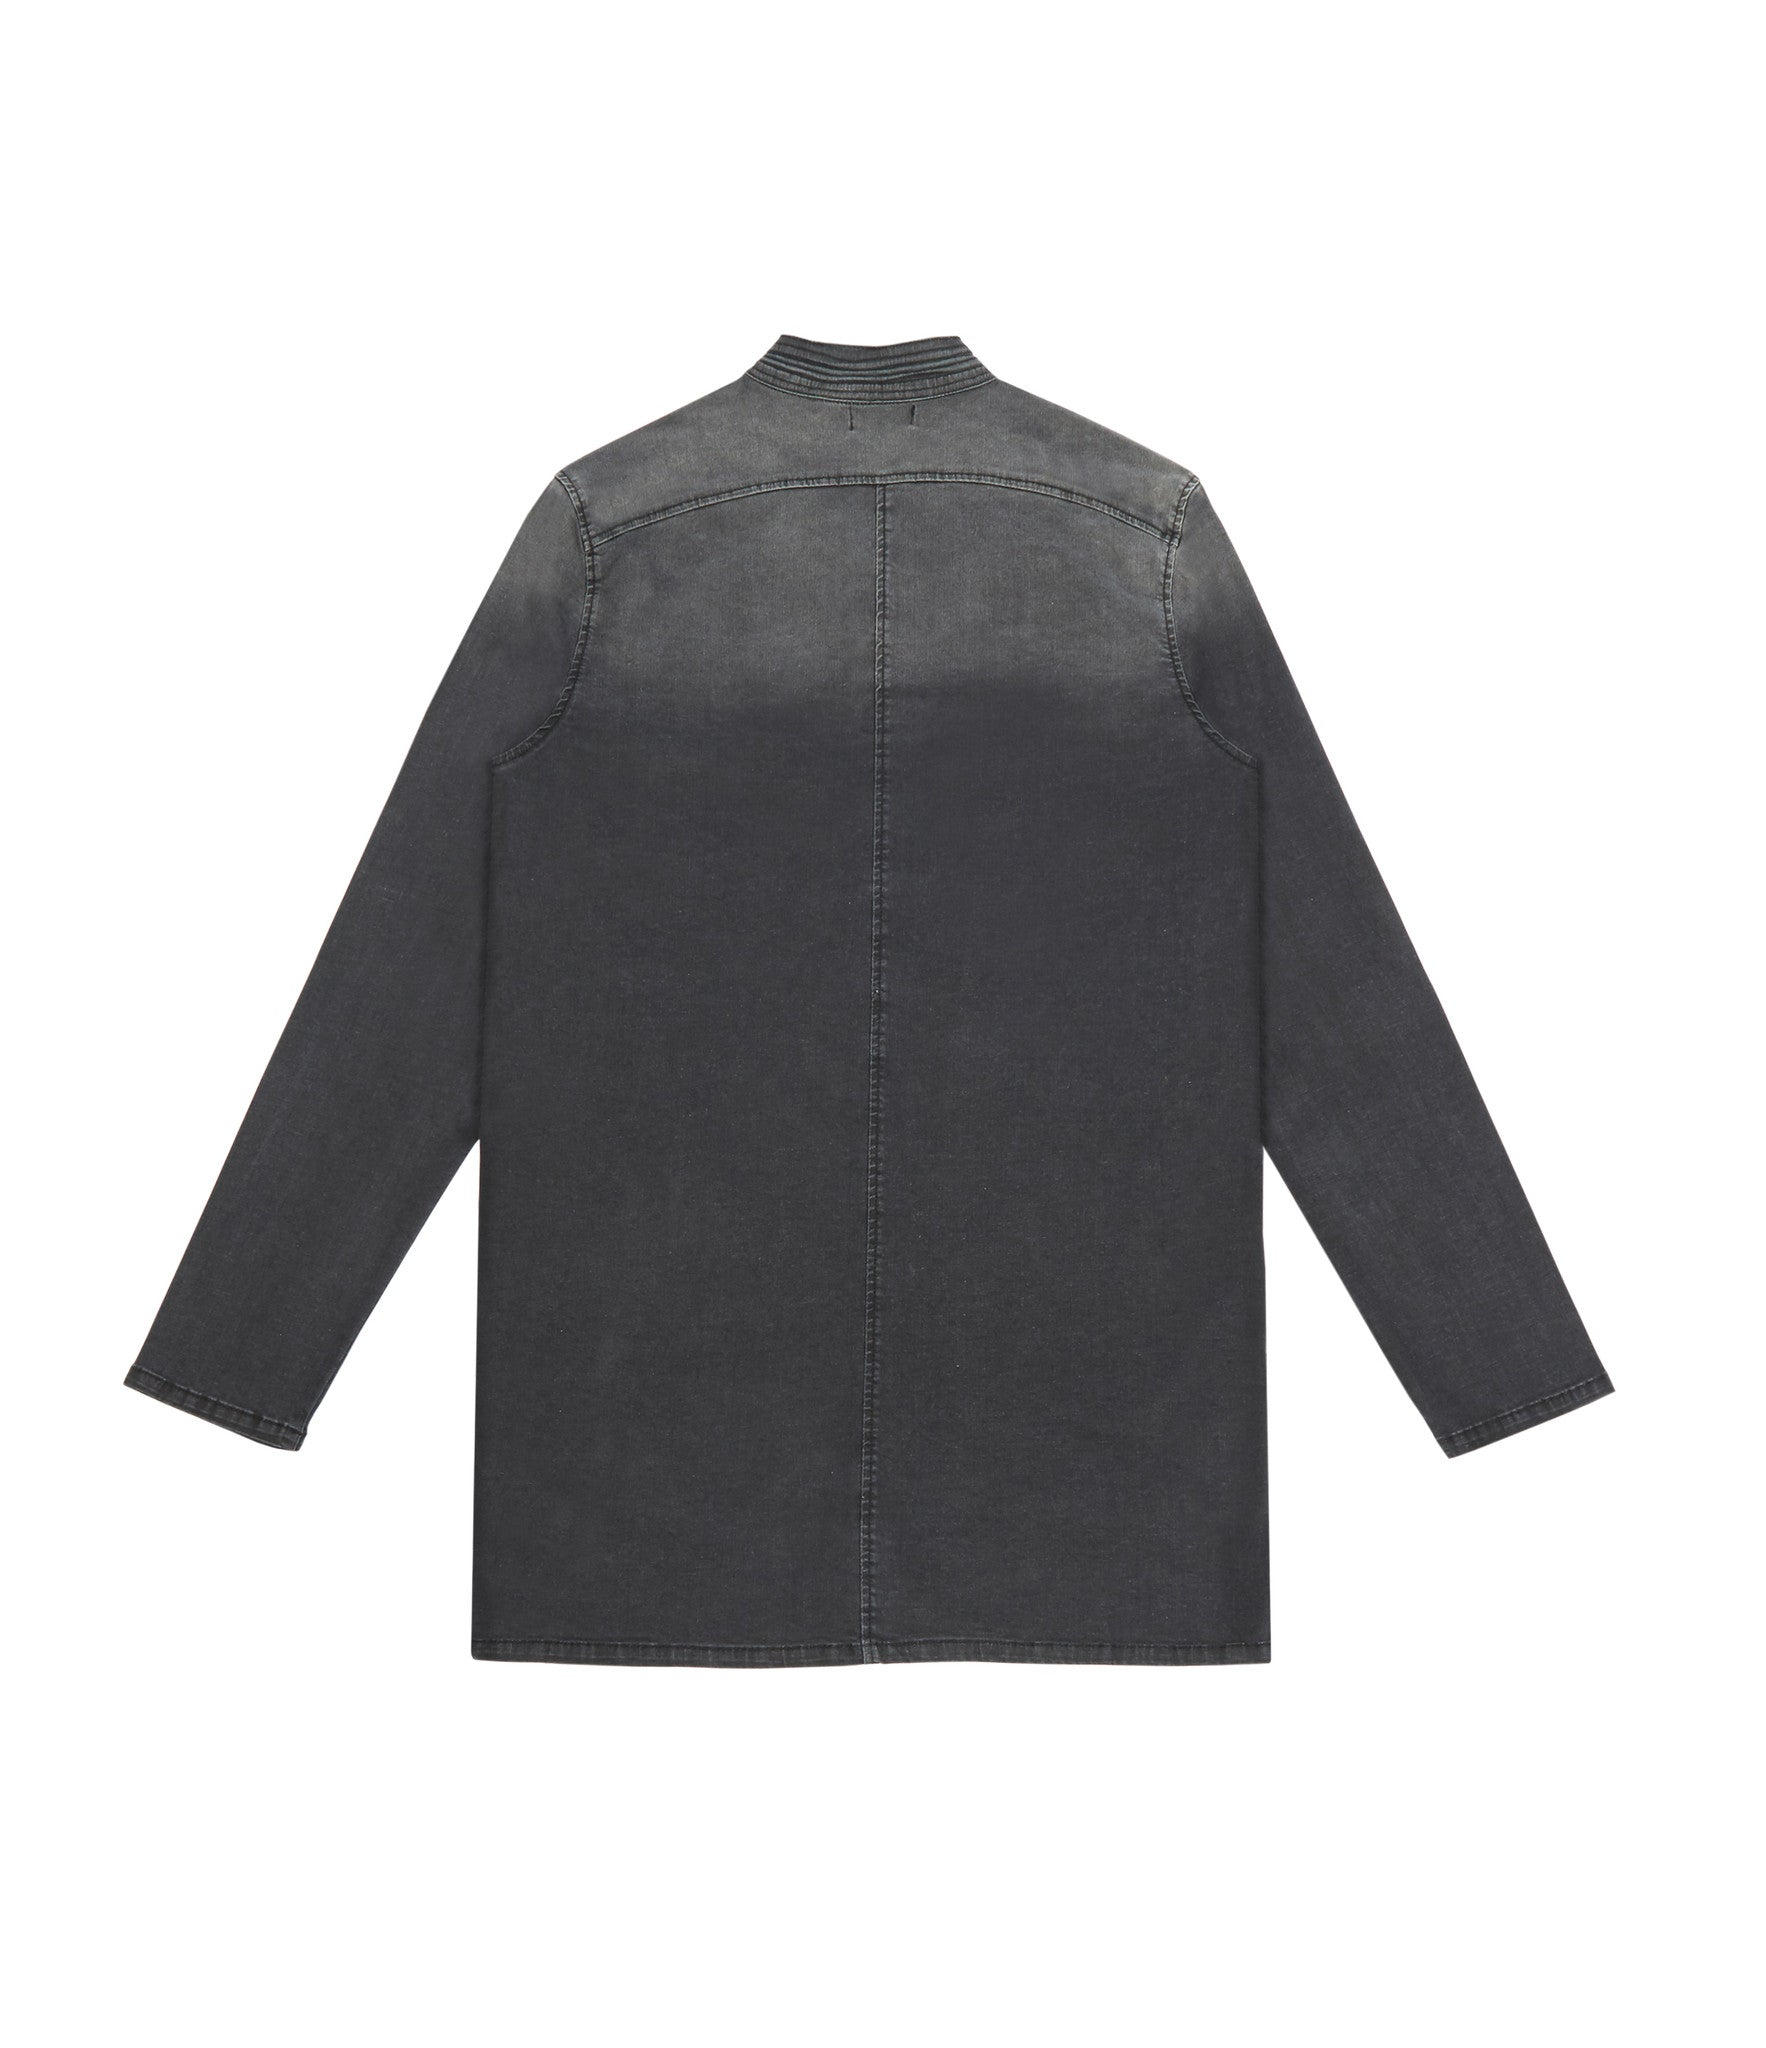 SH152 Stone Wash Denim Shirt - Black - underated london - underatedco - 2